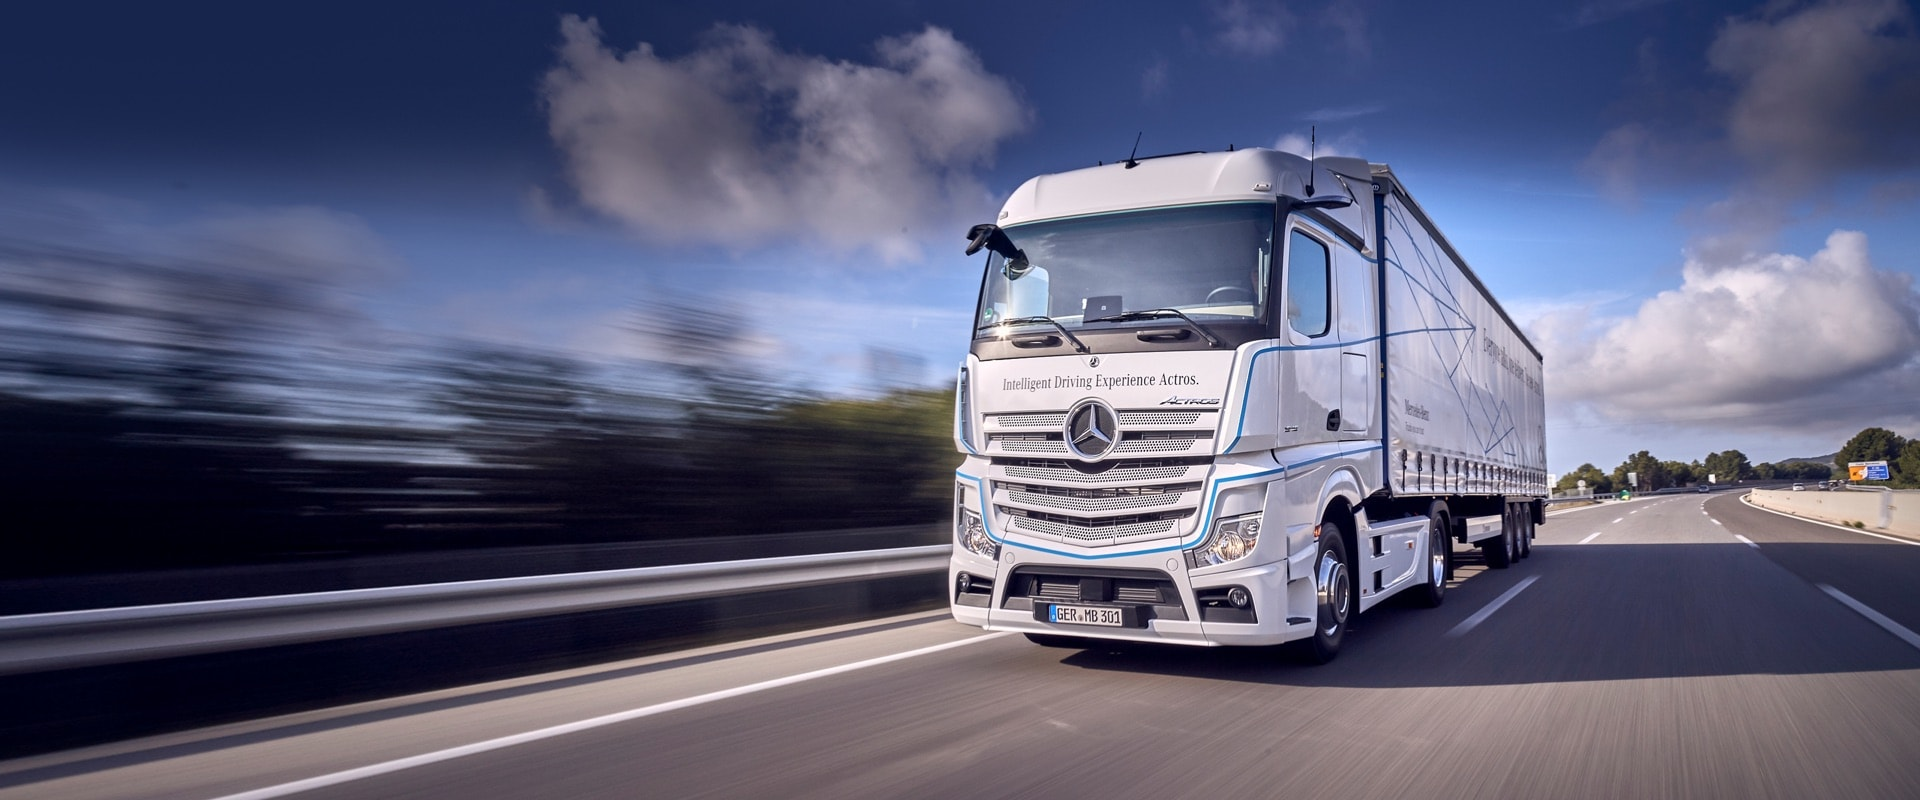 TomTom and Daimler Trucks